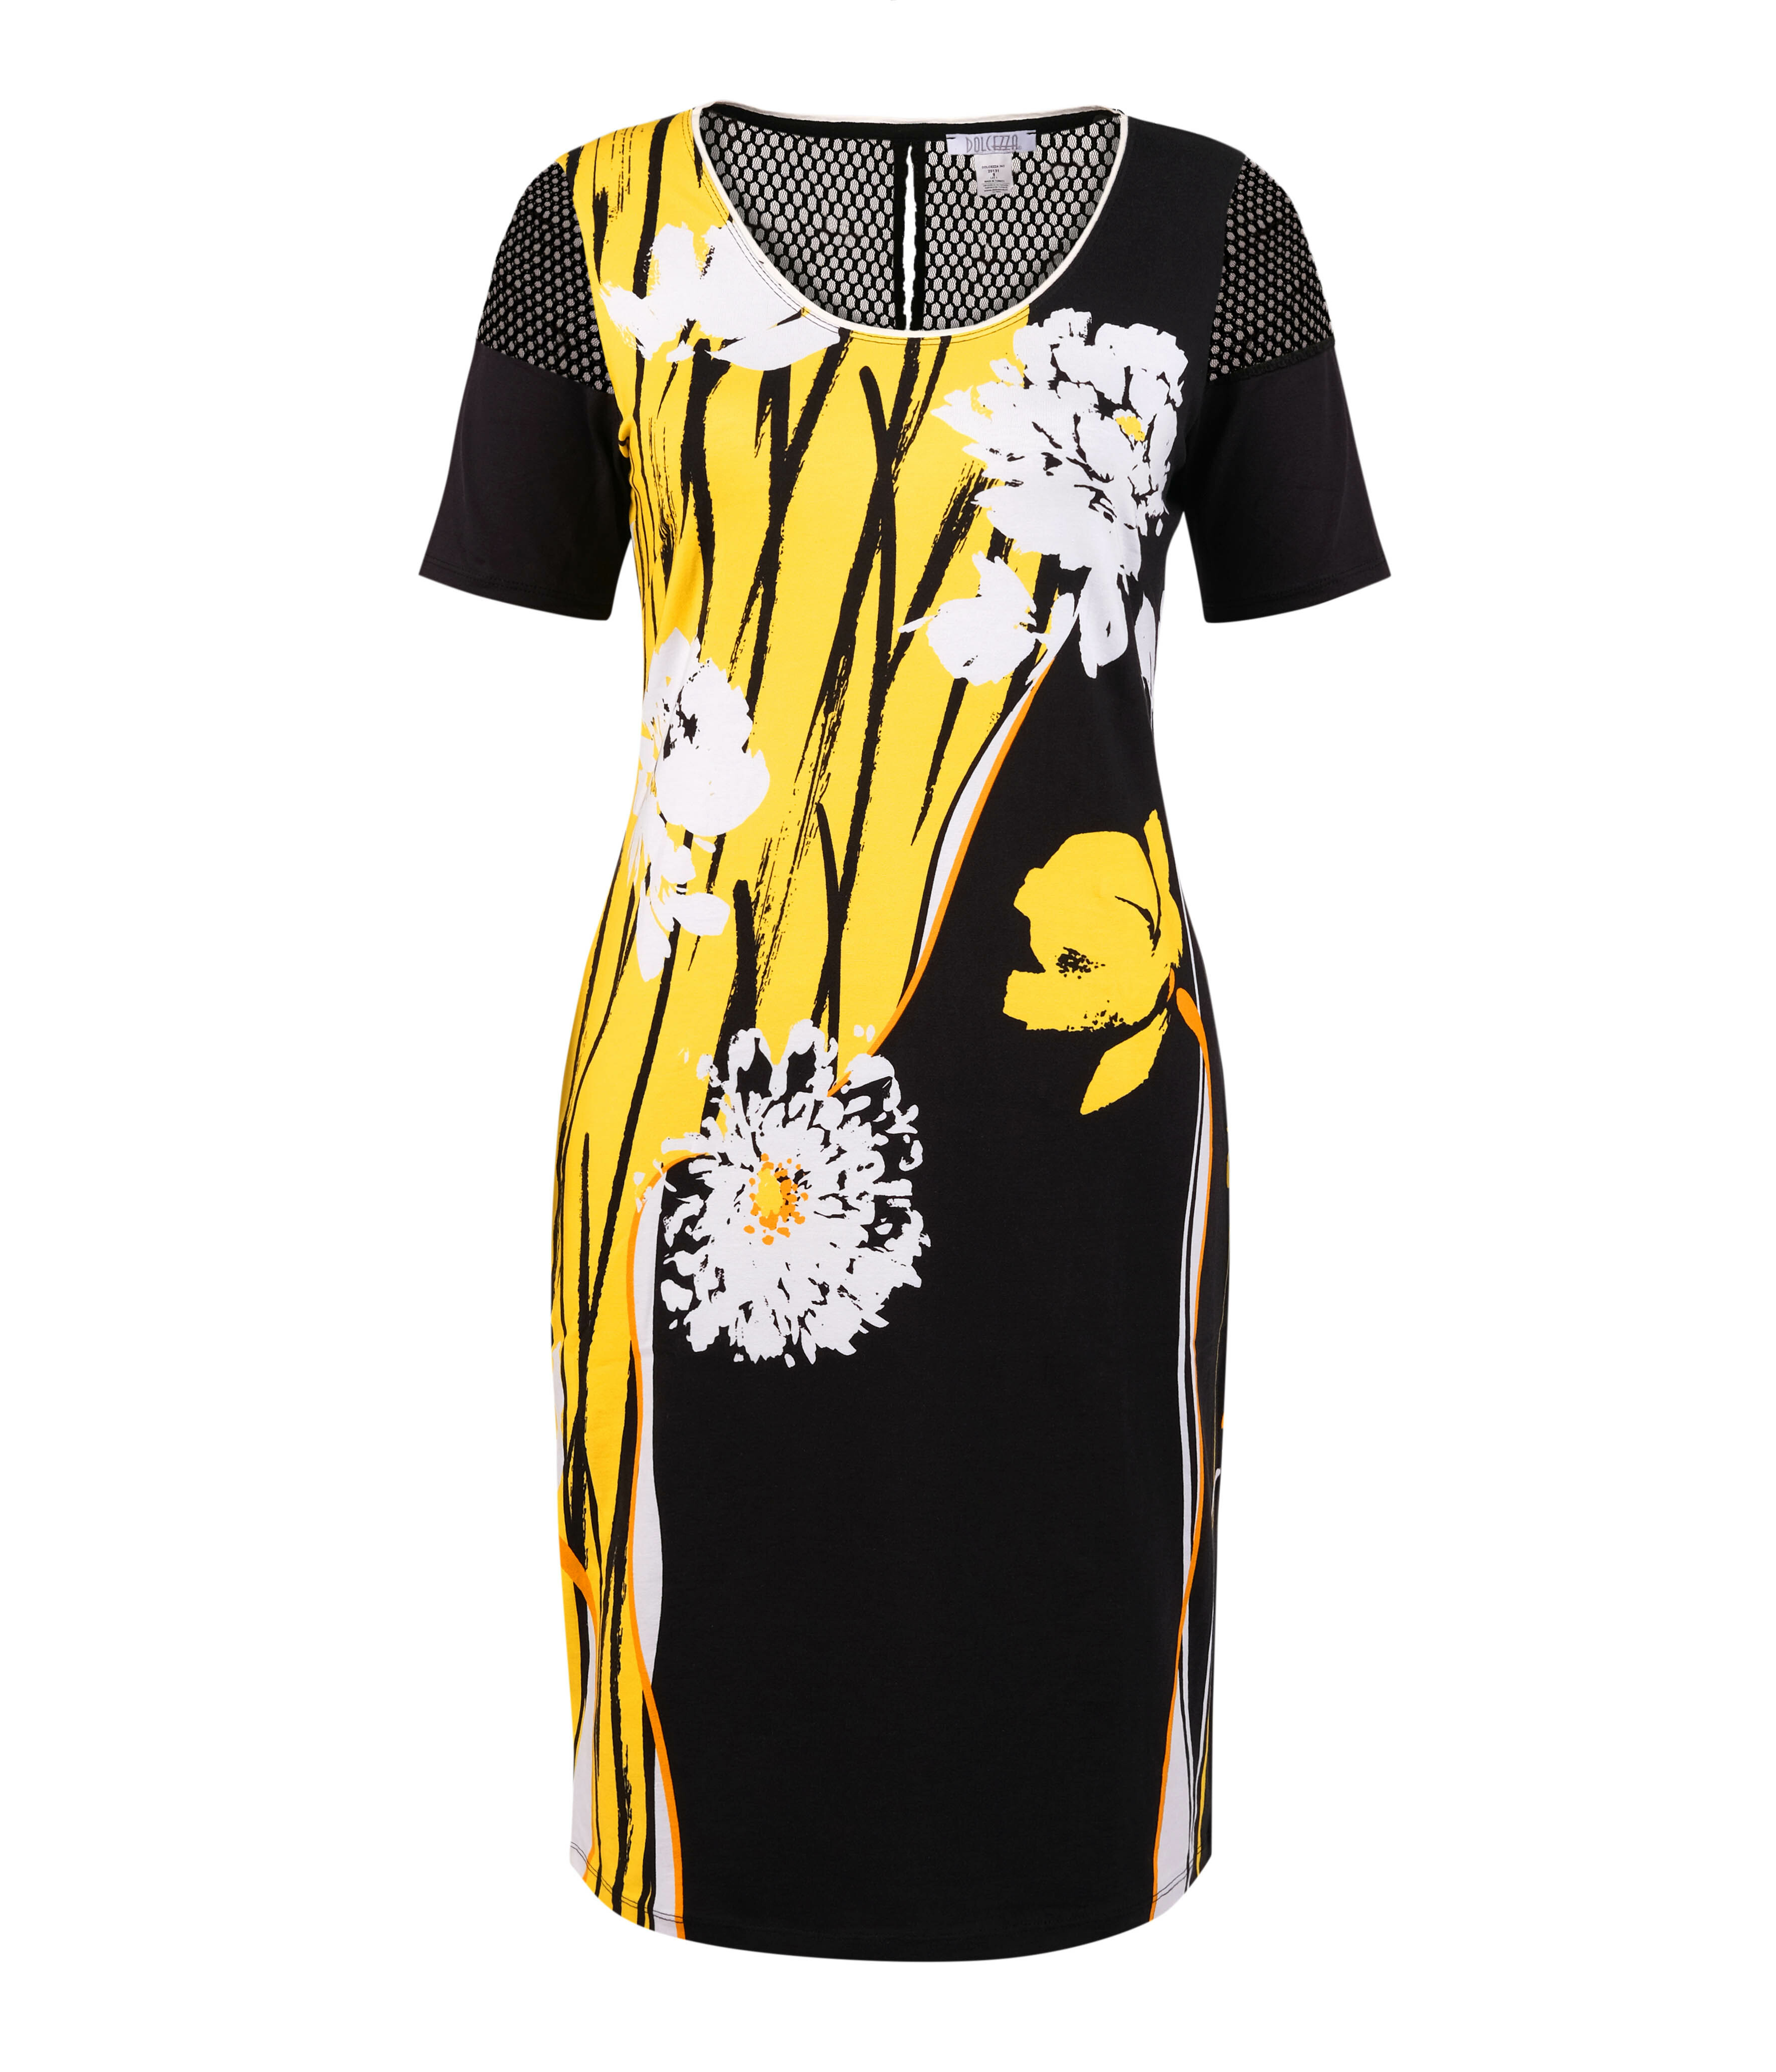 Simply Art Dolcezza: Bumble Bee Summer Bloom Abstract Art Dress (2 Left!) DOLCEZZA_SIMPLYART_20131_N